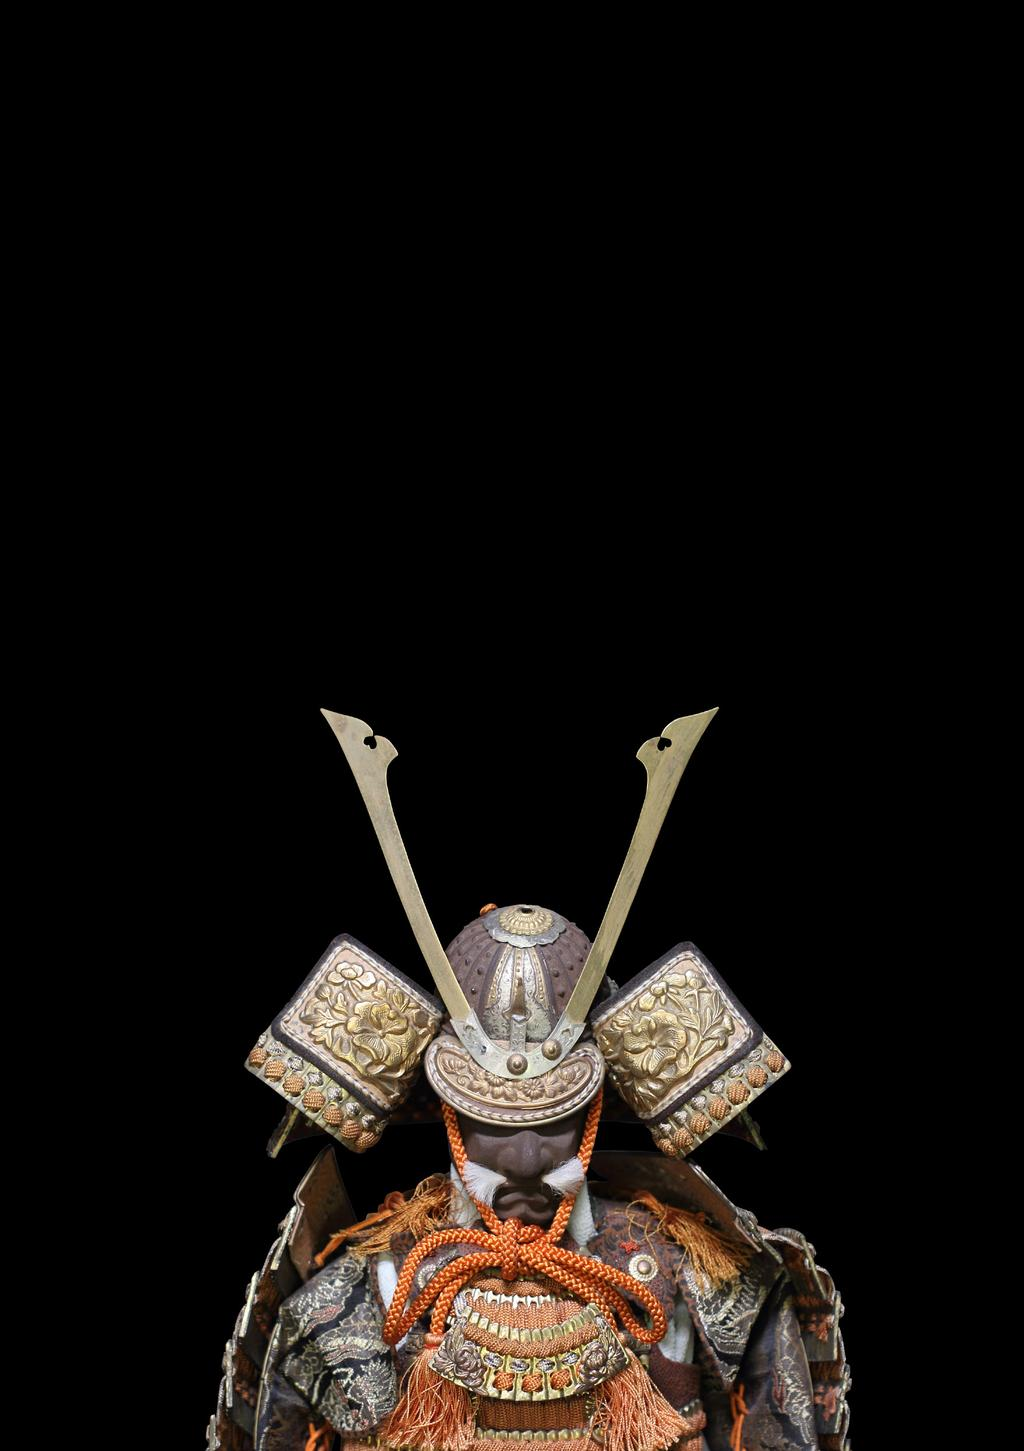 Bushidō in Transformation: Japanese Warrior Culture and Martiality PROGRAMME AND BOOK